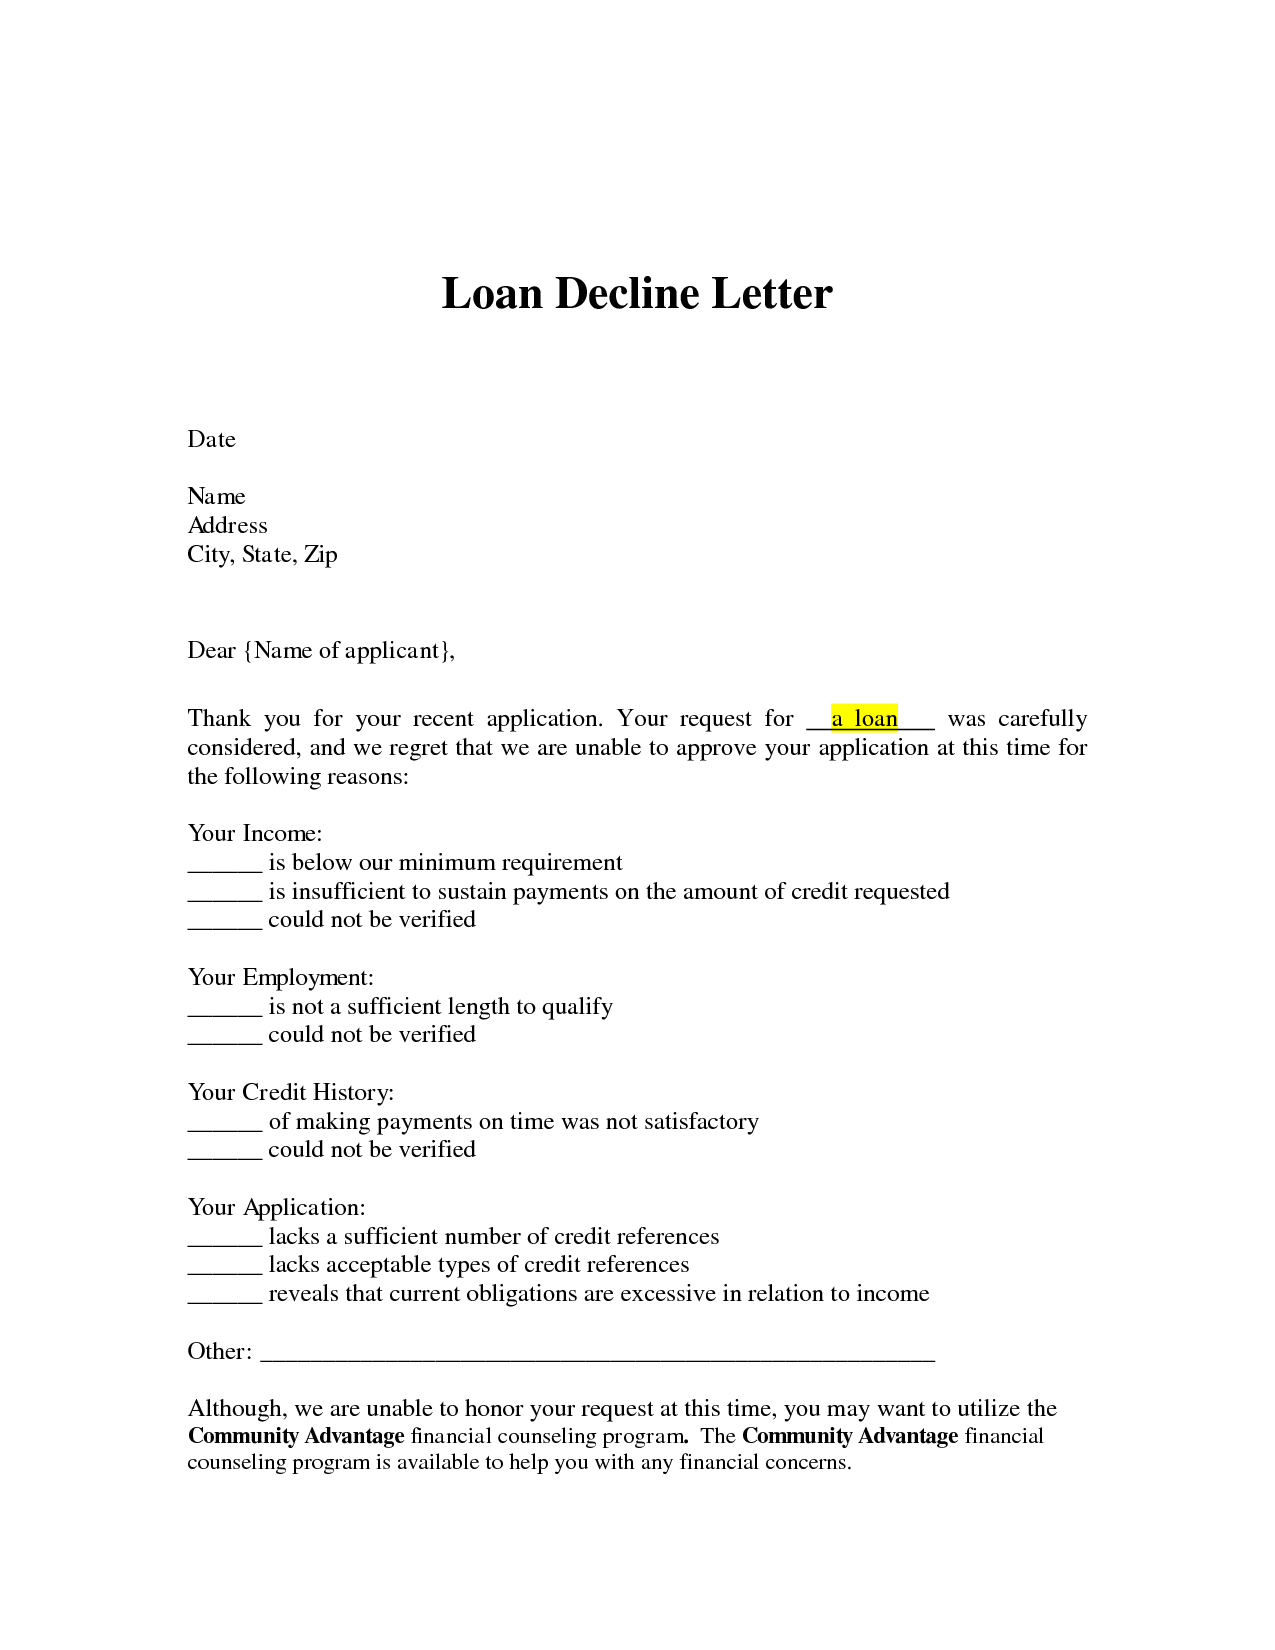 Loan decline letter loan denial letter arrives you can use that loan decline letter loan denial letter arrives you can use that information to see if your credit check matches up with the lenders reasons for denial thecheapjerseys Choice Image